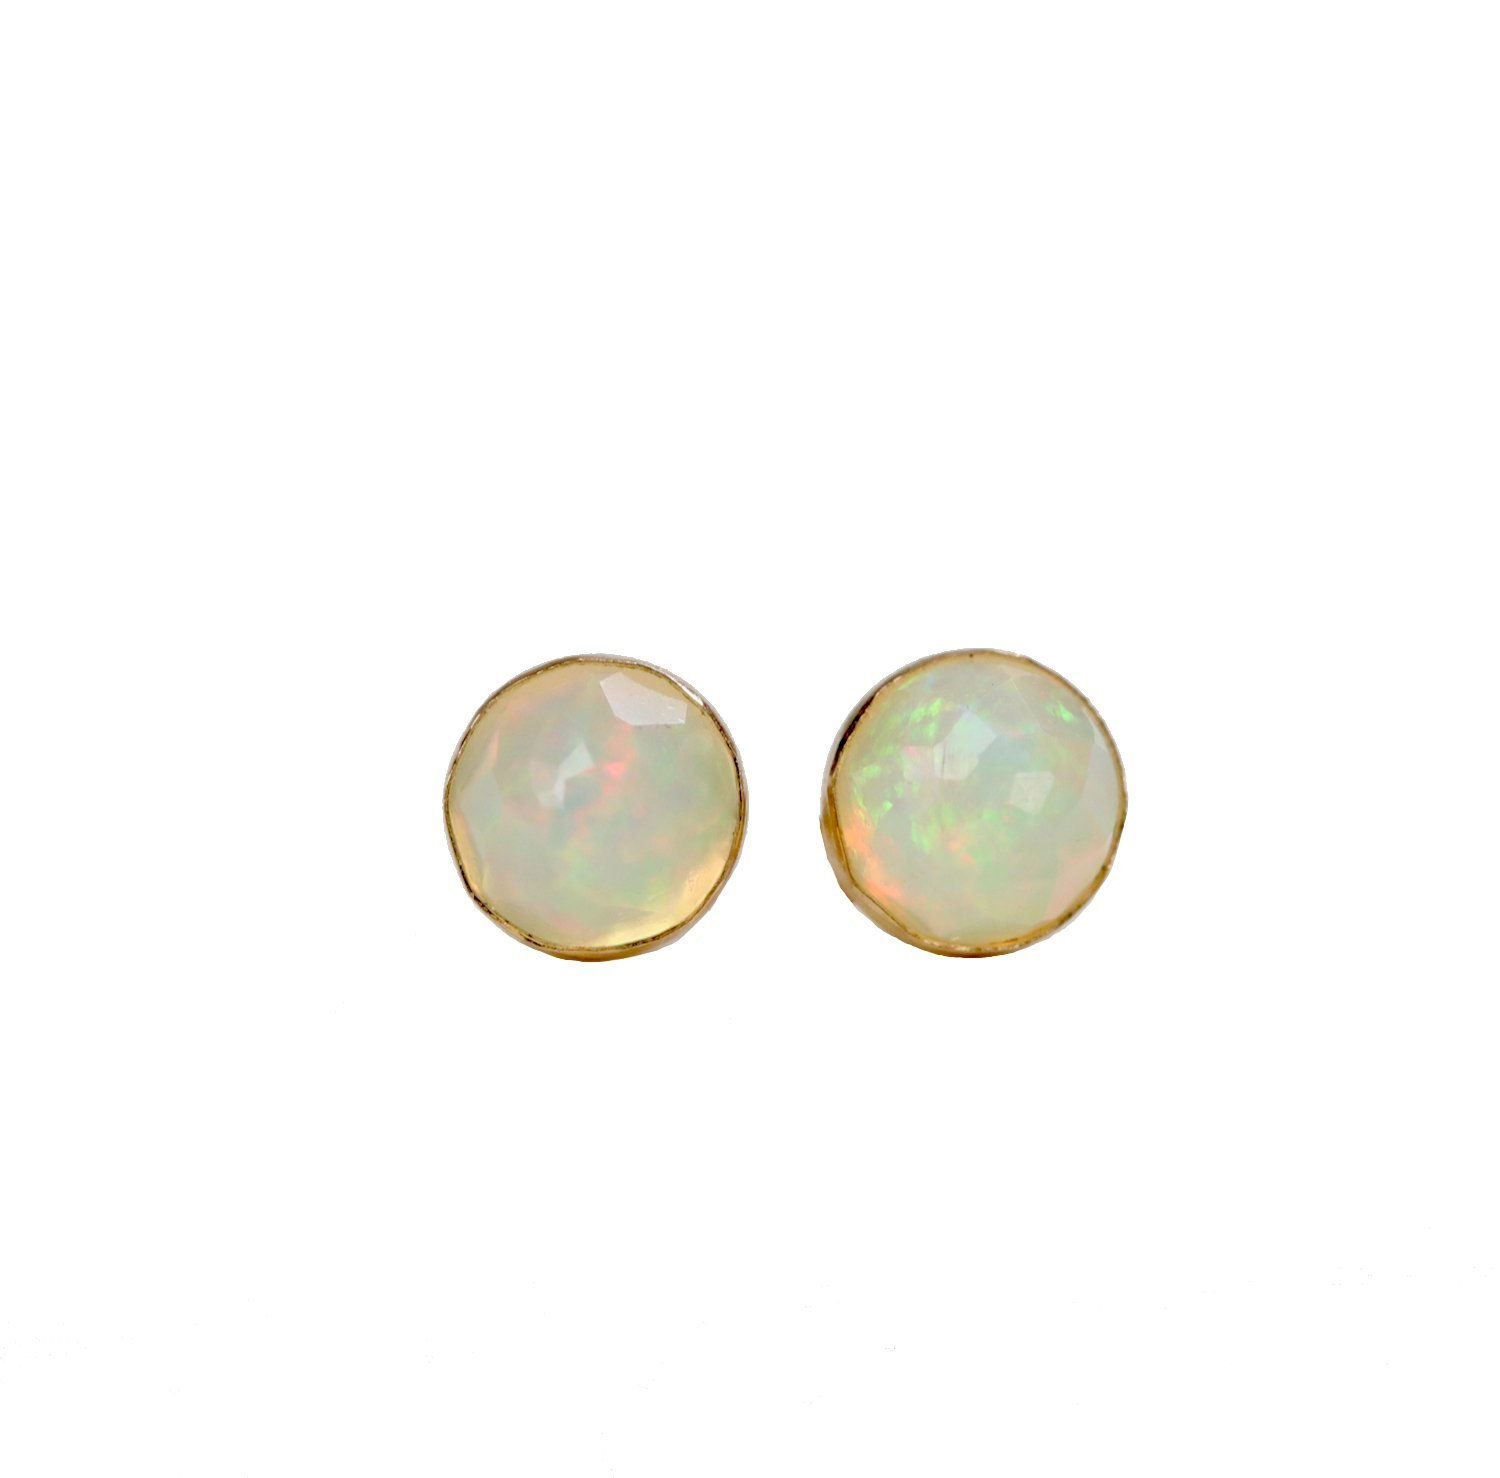 Genuine White Opal Gold Stud Earring Real Opal Faceted Ethiopian Welo - 6mm